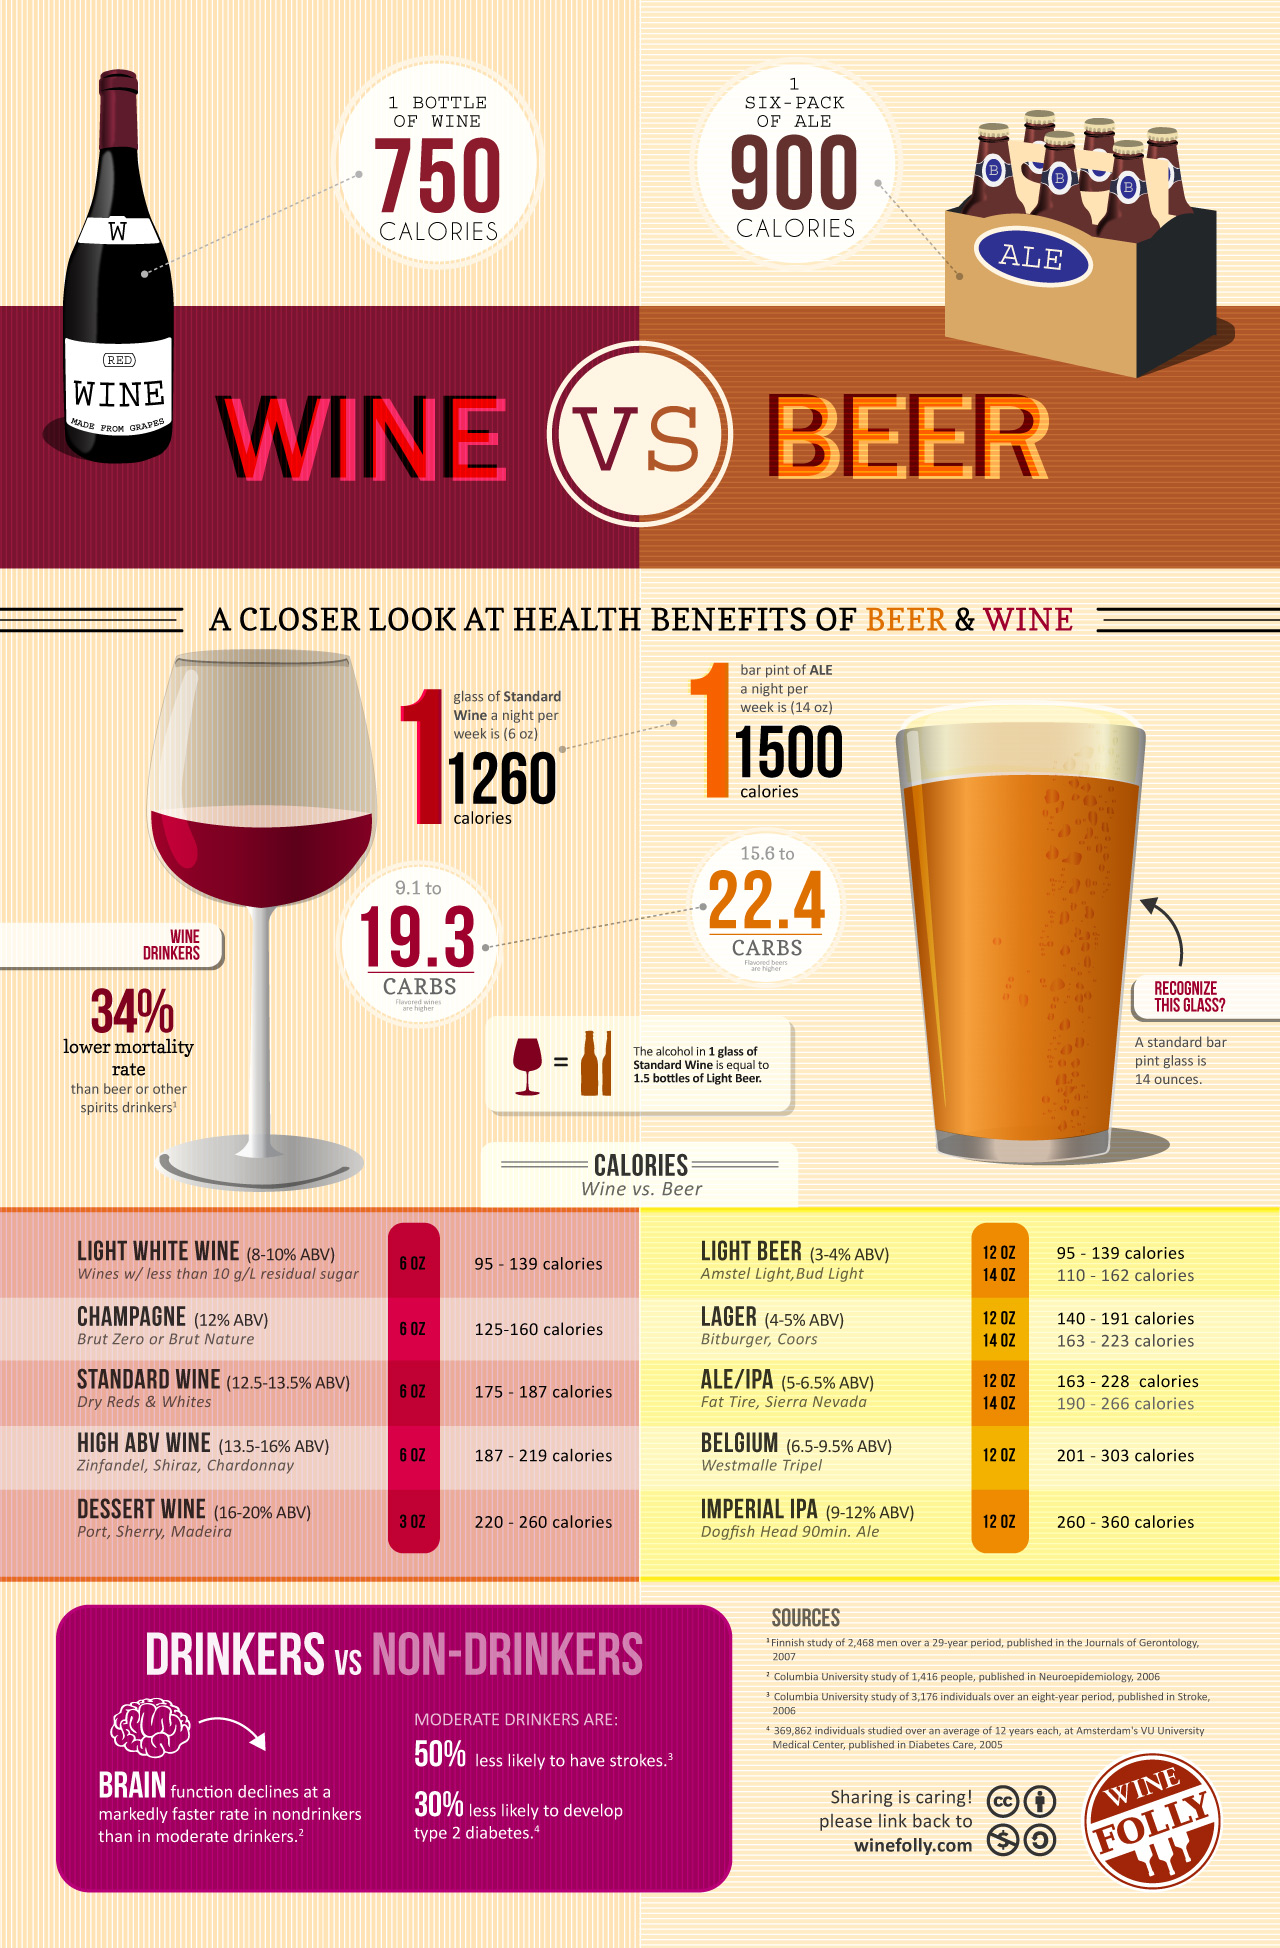 wine-vs-beer-infographic.jpg